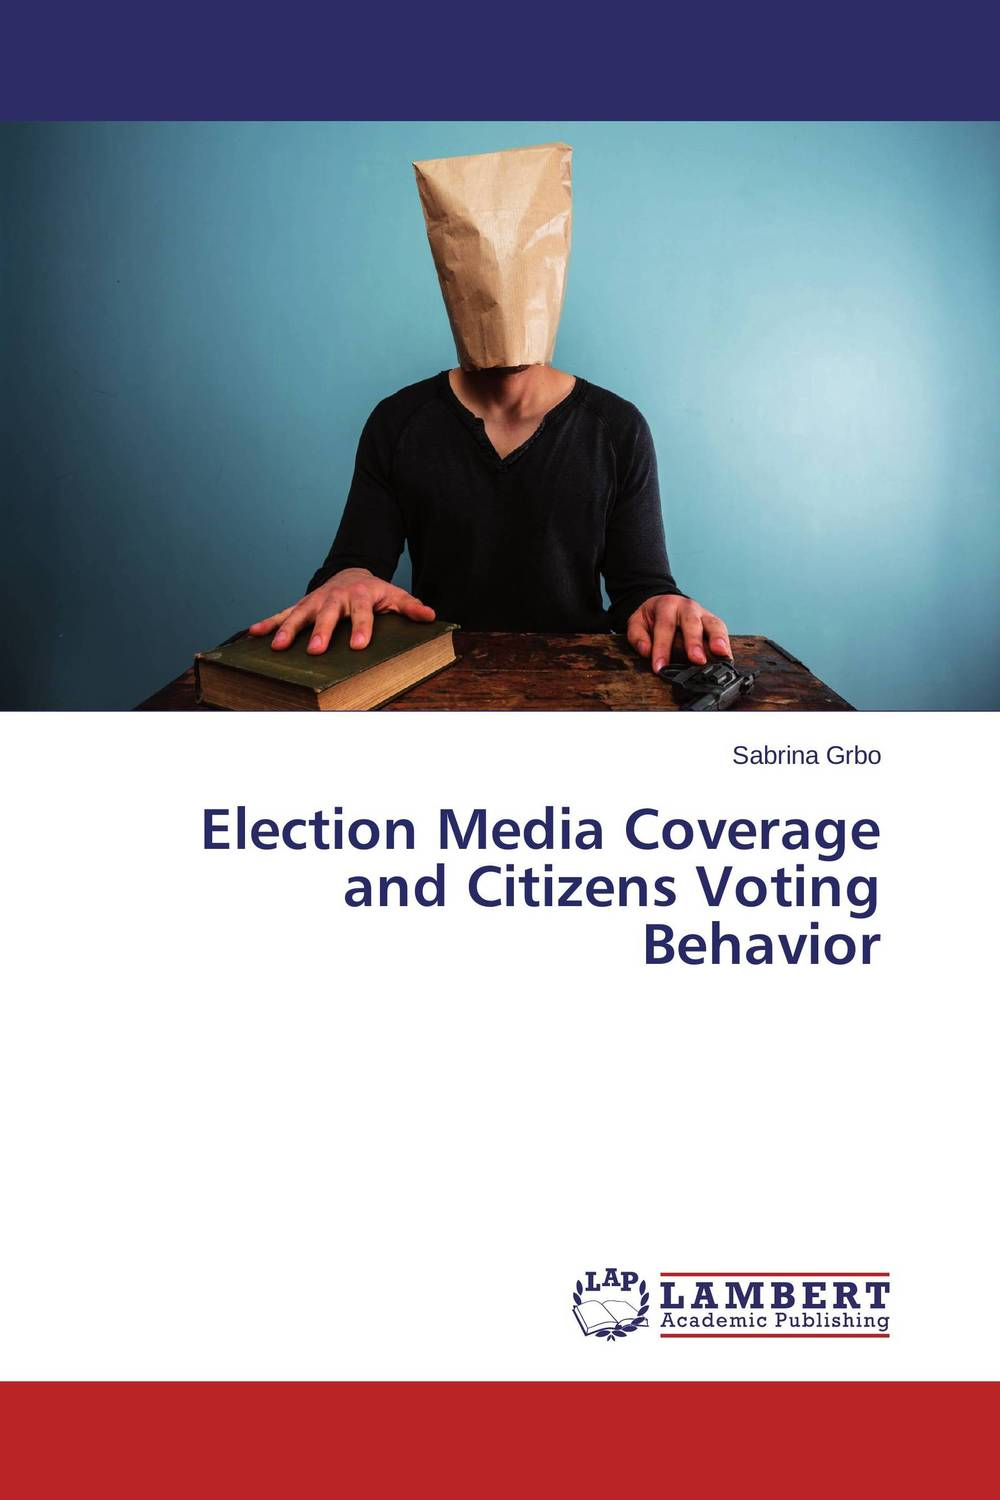 the value of a vote and medias influence on citizens voting choices Social network sites of politicians influence their perception by the more value and influence facebook and the more likely citizens are to vote.